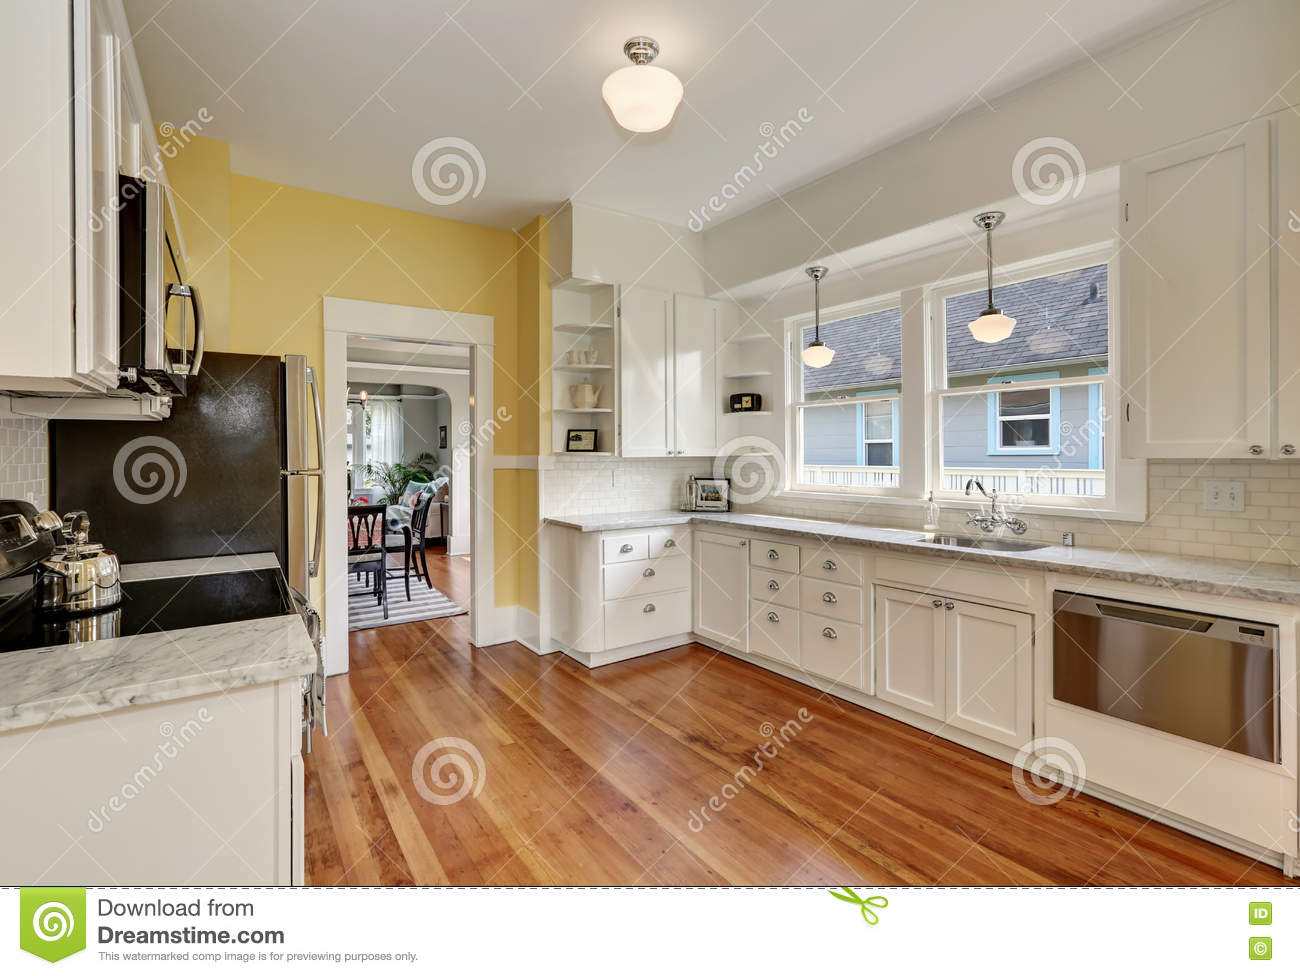 white kitchen cabinets yellowing kitchen interior with white cabinets yellow walls and 29063